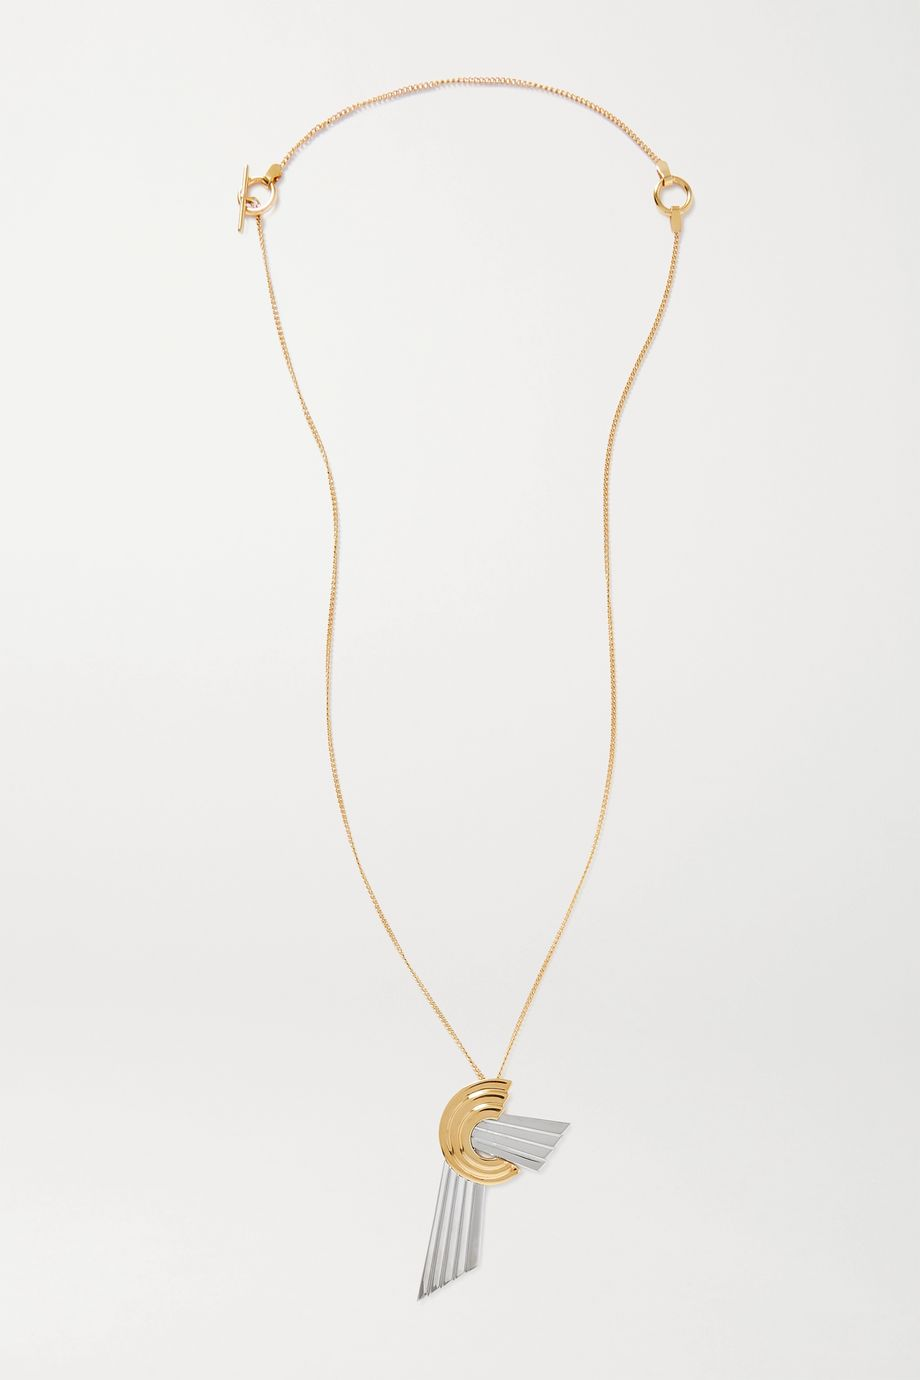 Leda Madera Meryl palladium-plated and gold-plated necklace